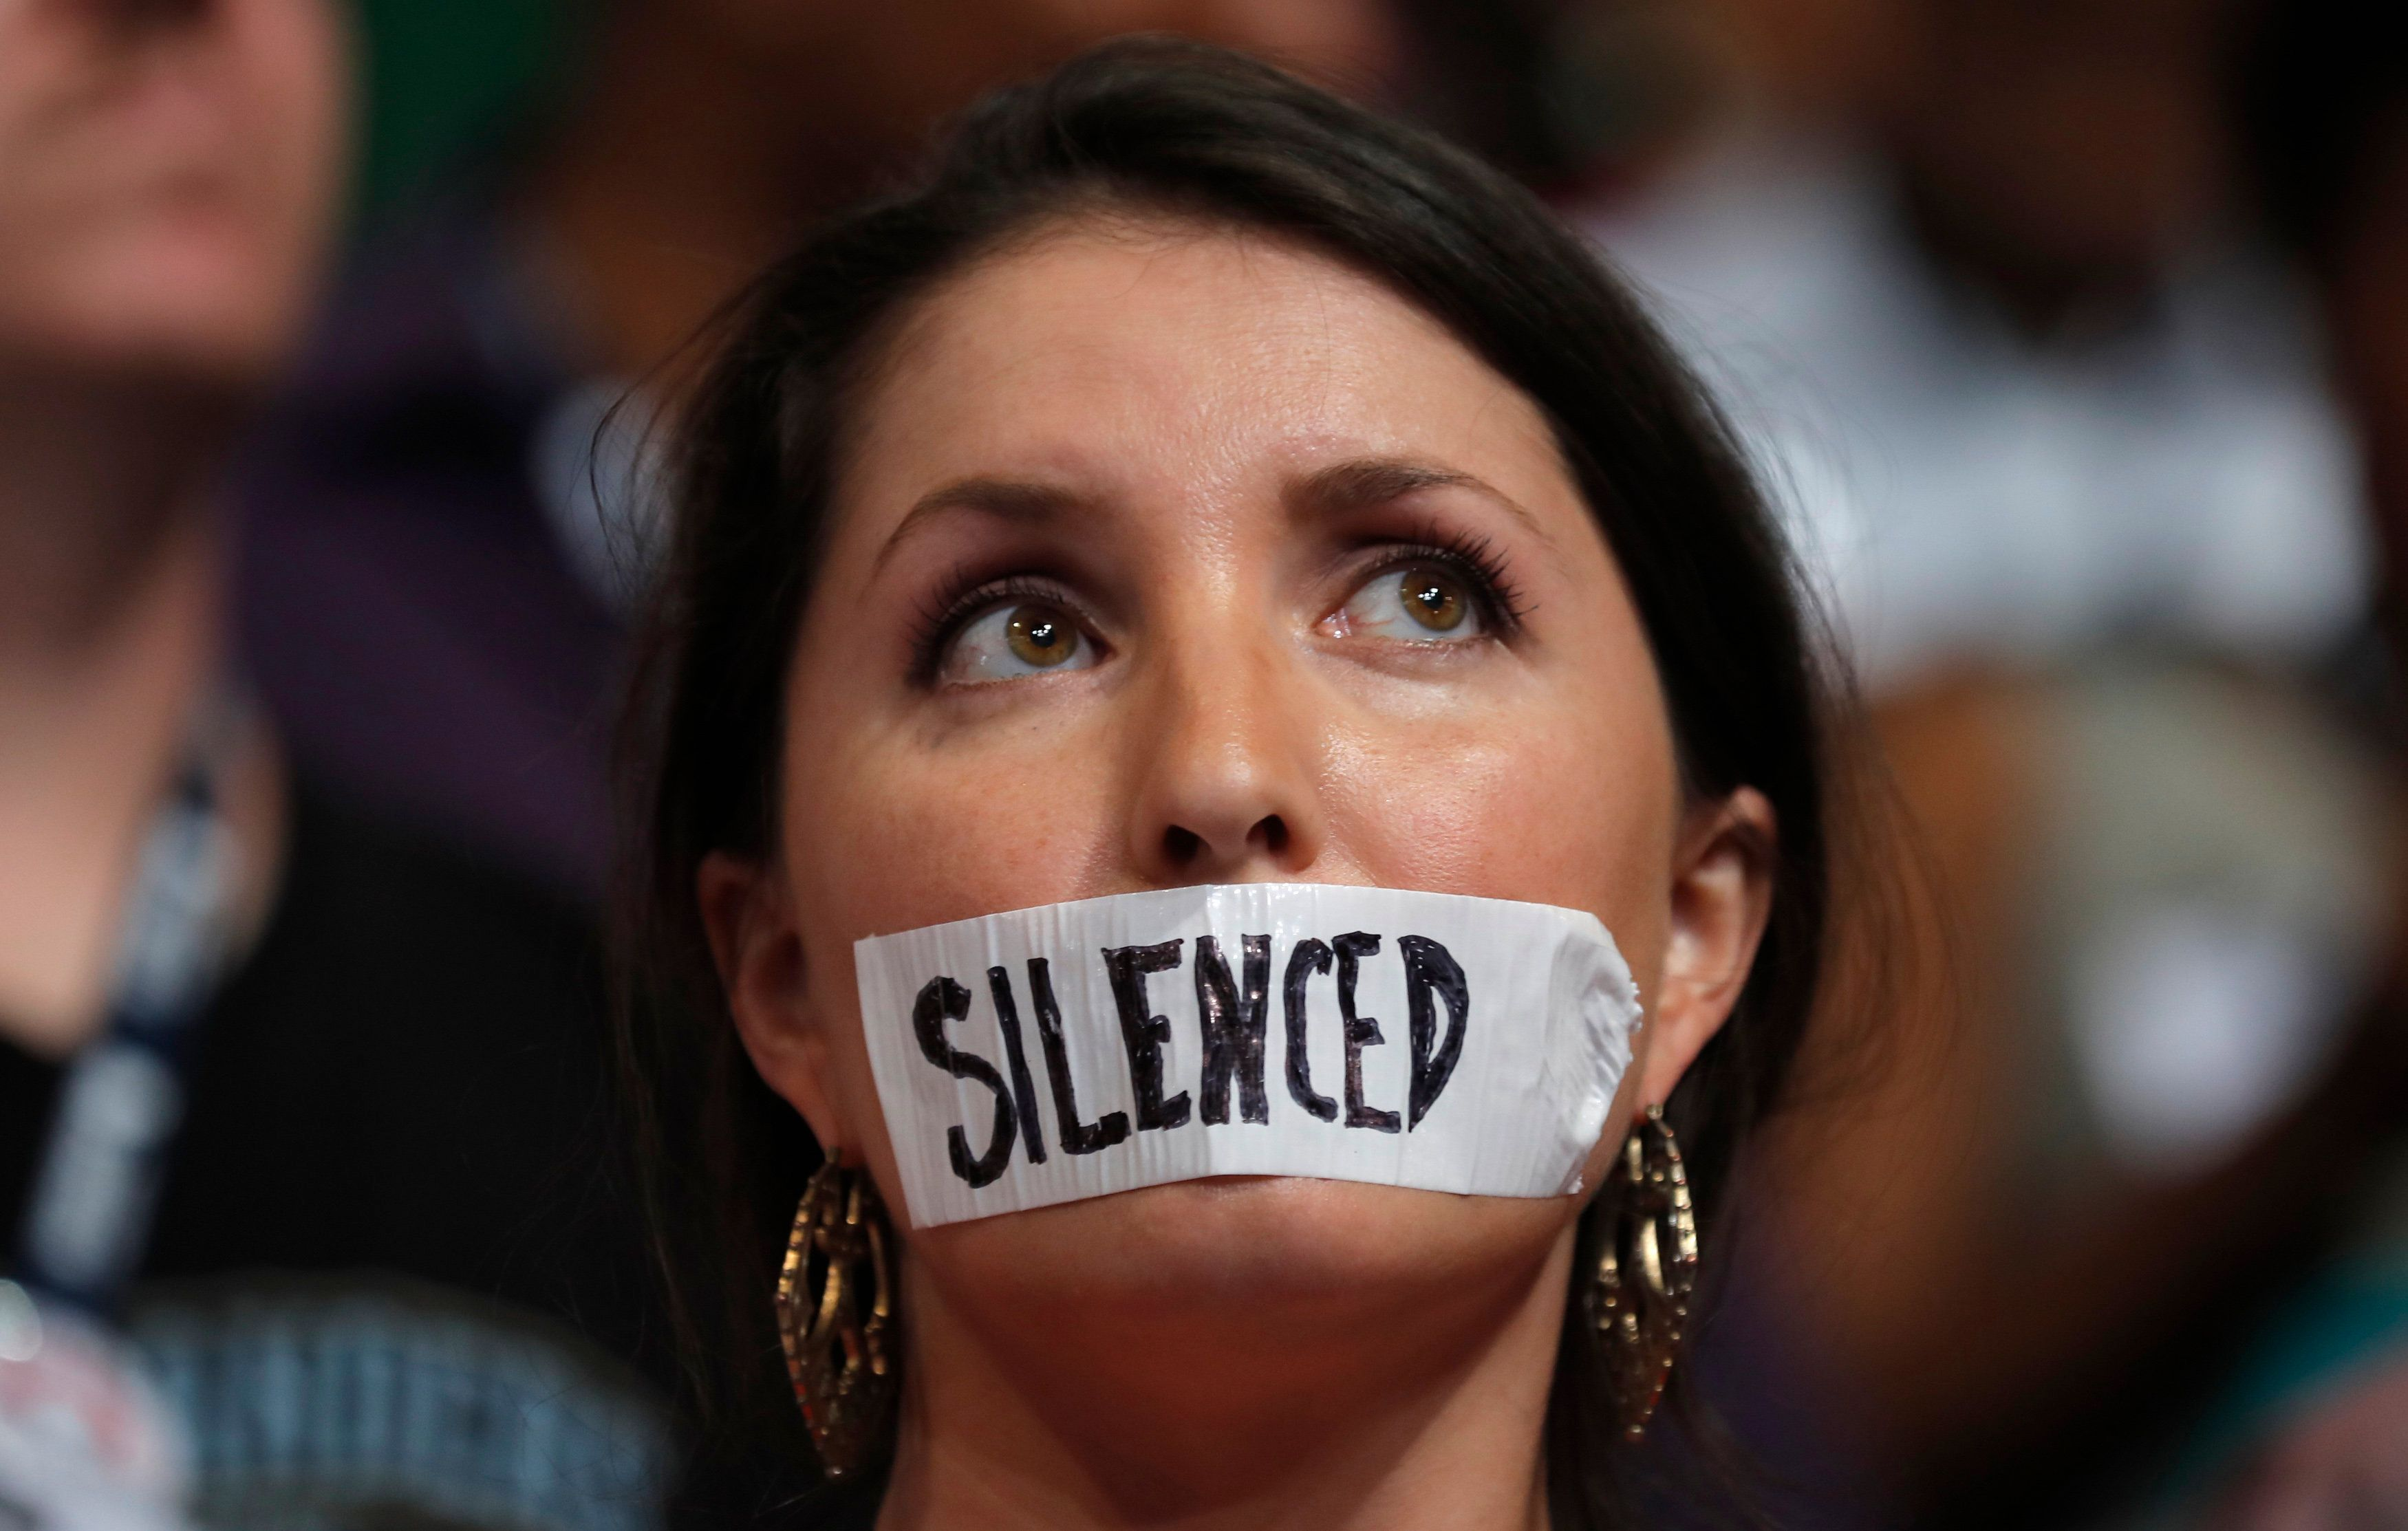 A supporter of former Democratic U.S. presidential candidate Bernie Sanders wears tape across her mouth in protest on the floor at the Democratic National Convention in Philadelphia, Pennsylvania, U.S., July 25, 2016. REUTERS/Jim Young